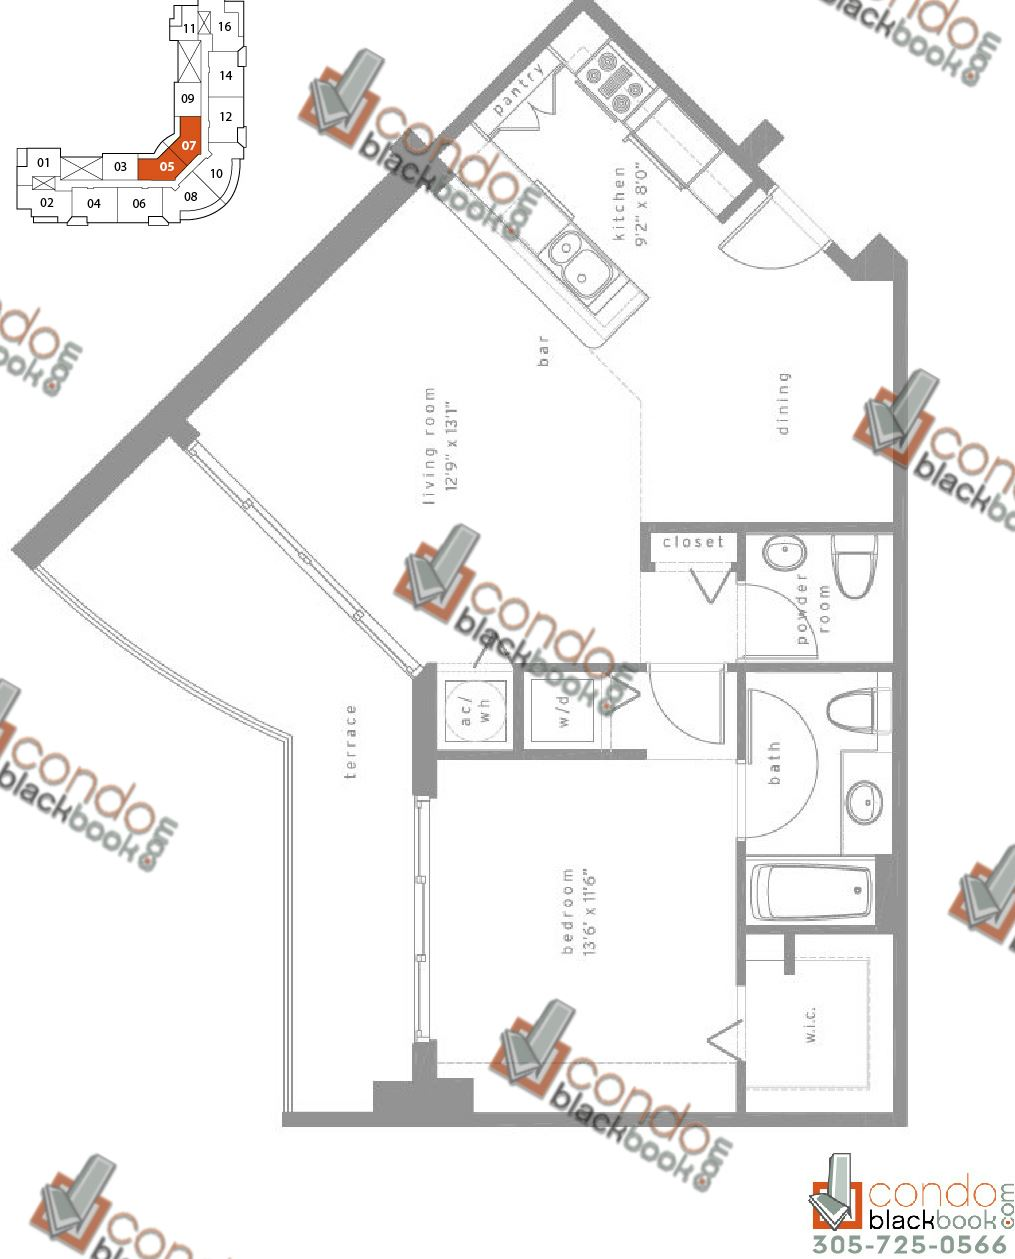 Floor plan for Met1 Downtown Miami Miami, model B, line 05/07, 1/1,5 bedrooms, 955 sq ft